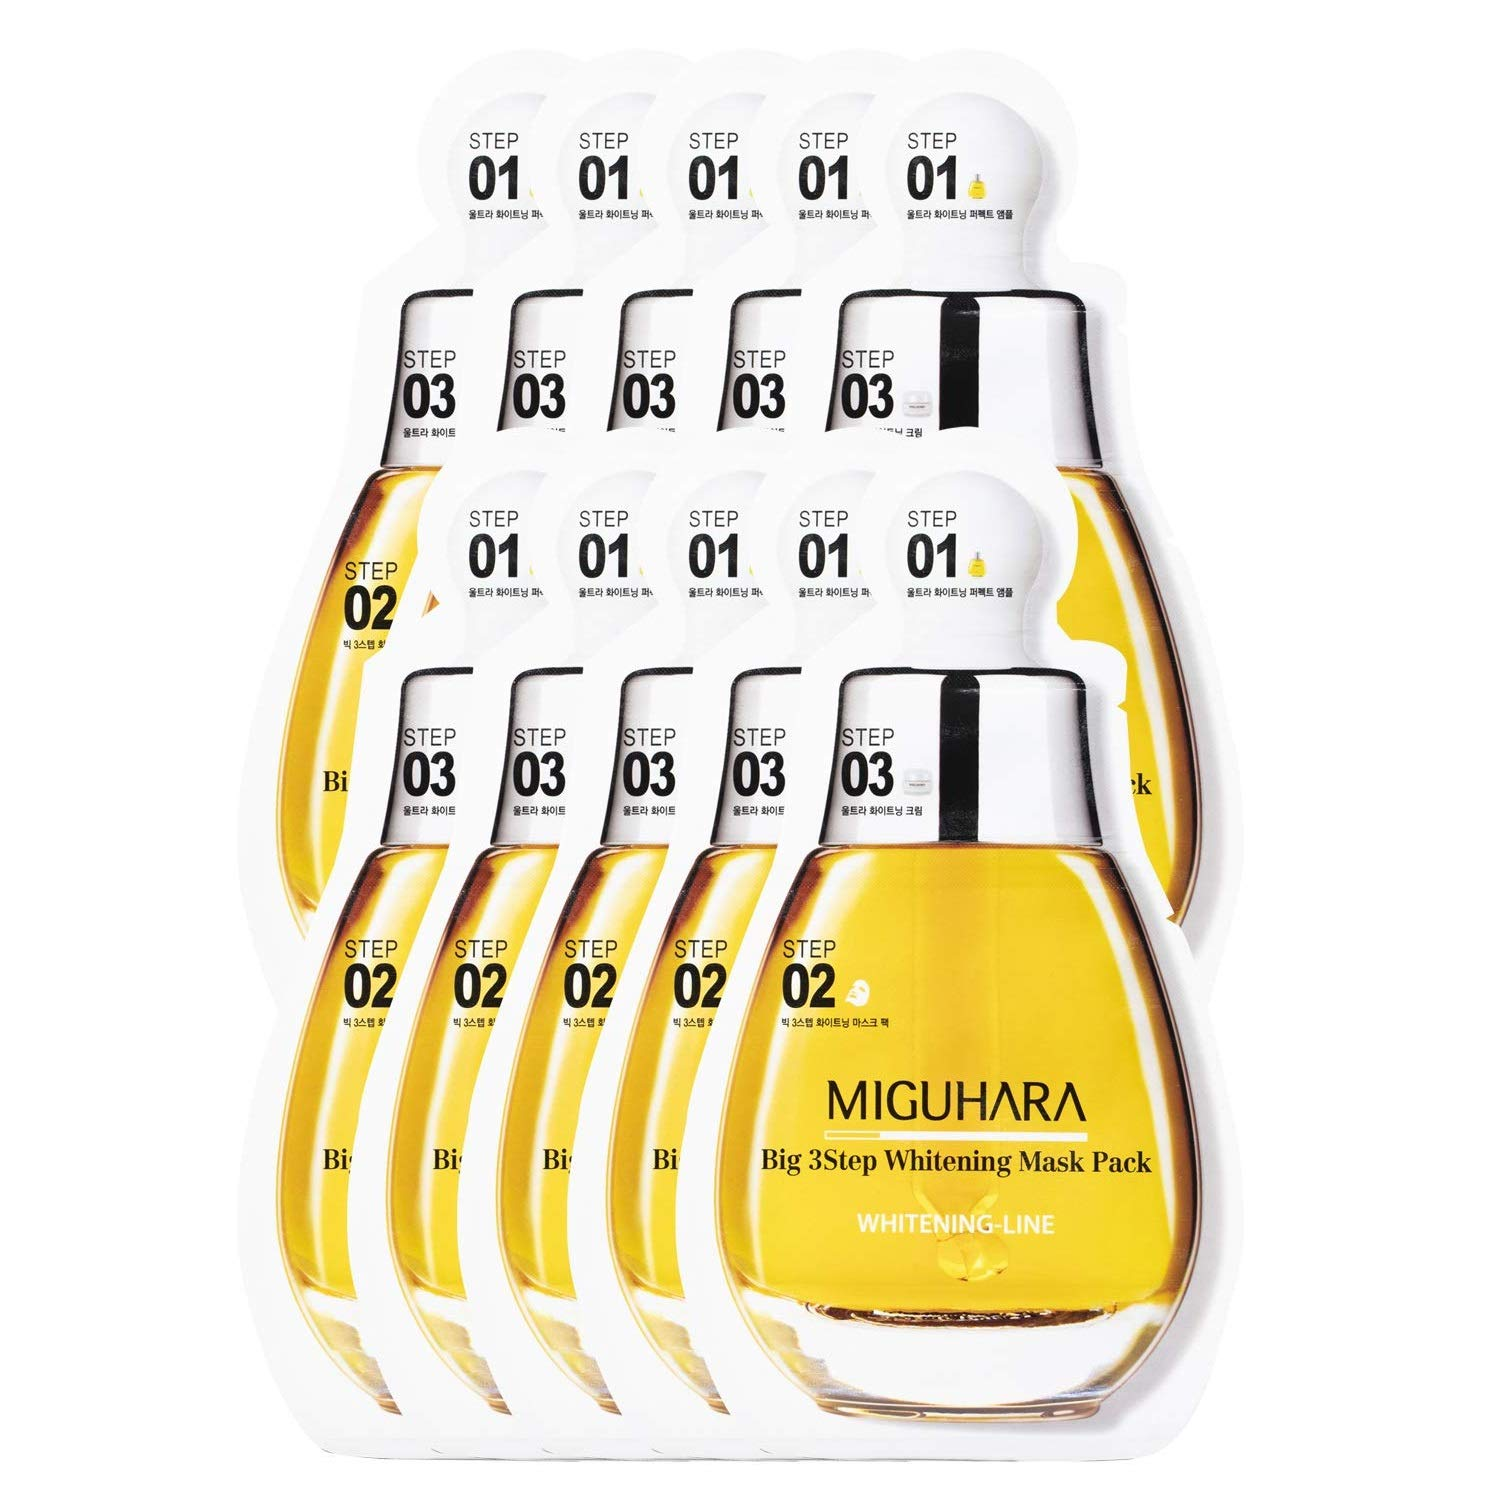 Miguhara Brightening Ampoule, Facial Cream, Facial Sheet Mask - All in 10 Facial Mask 1 Pack inc. Essence Toner 20ml - Moisturizing, Brightening Pore Tightening for Dry Sensitive Skin